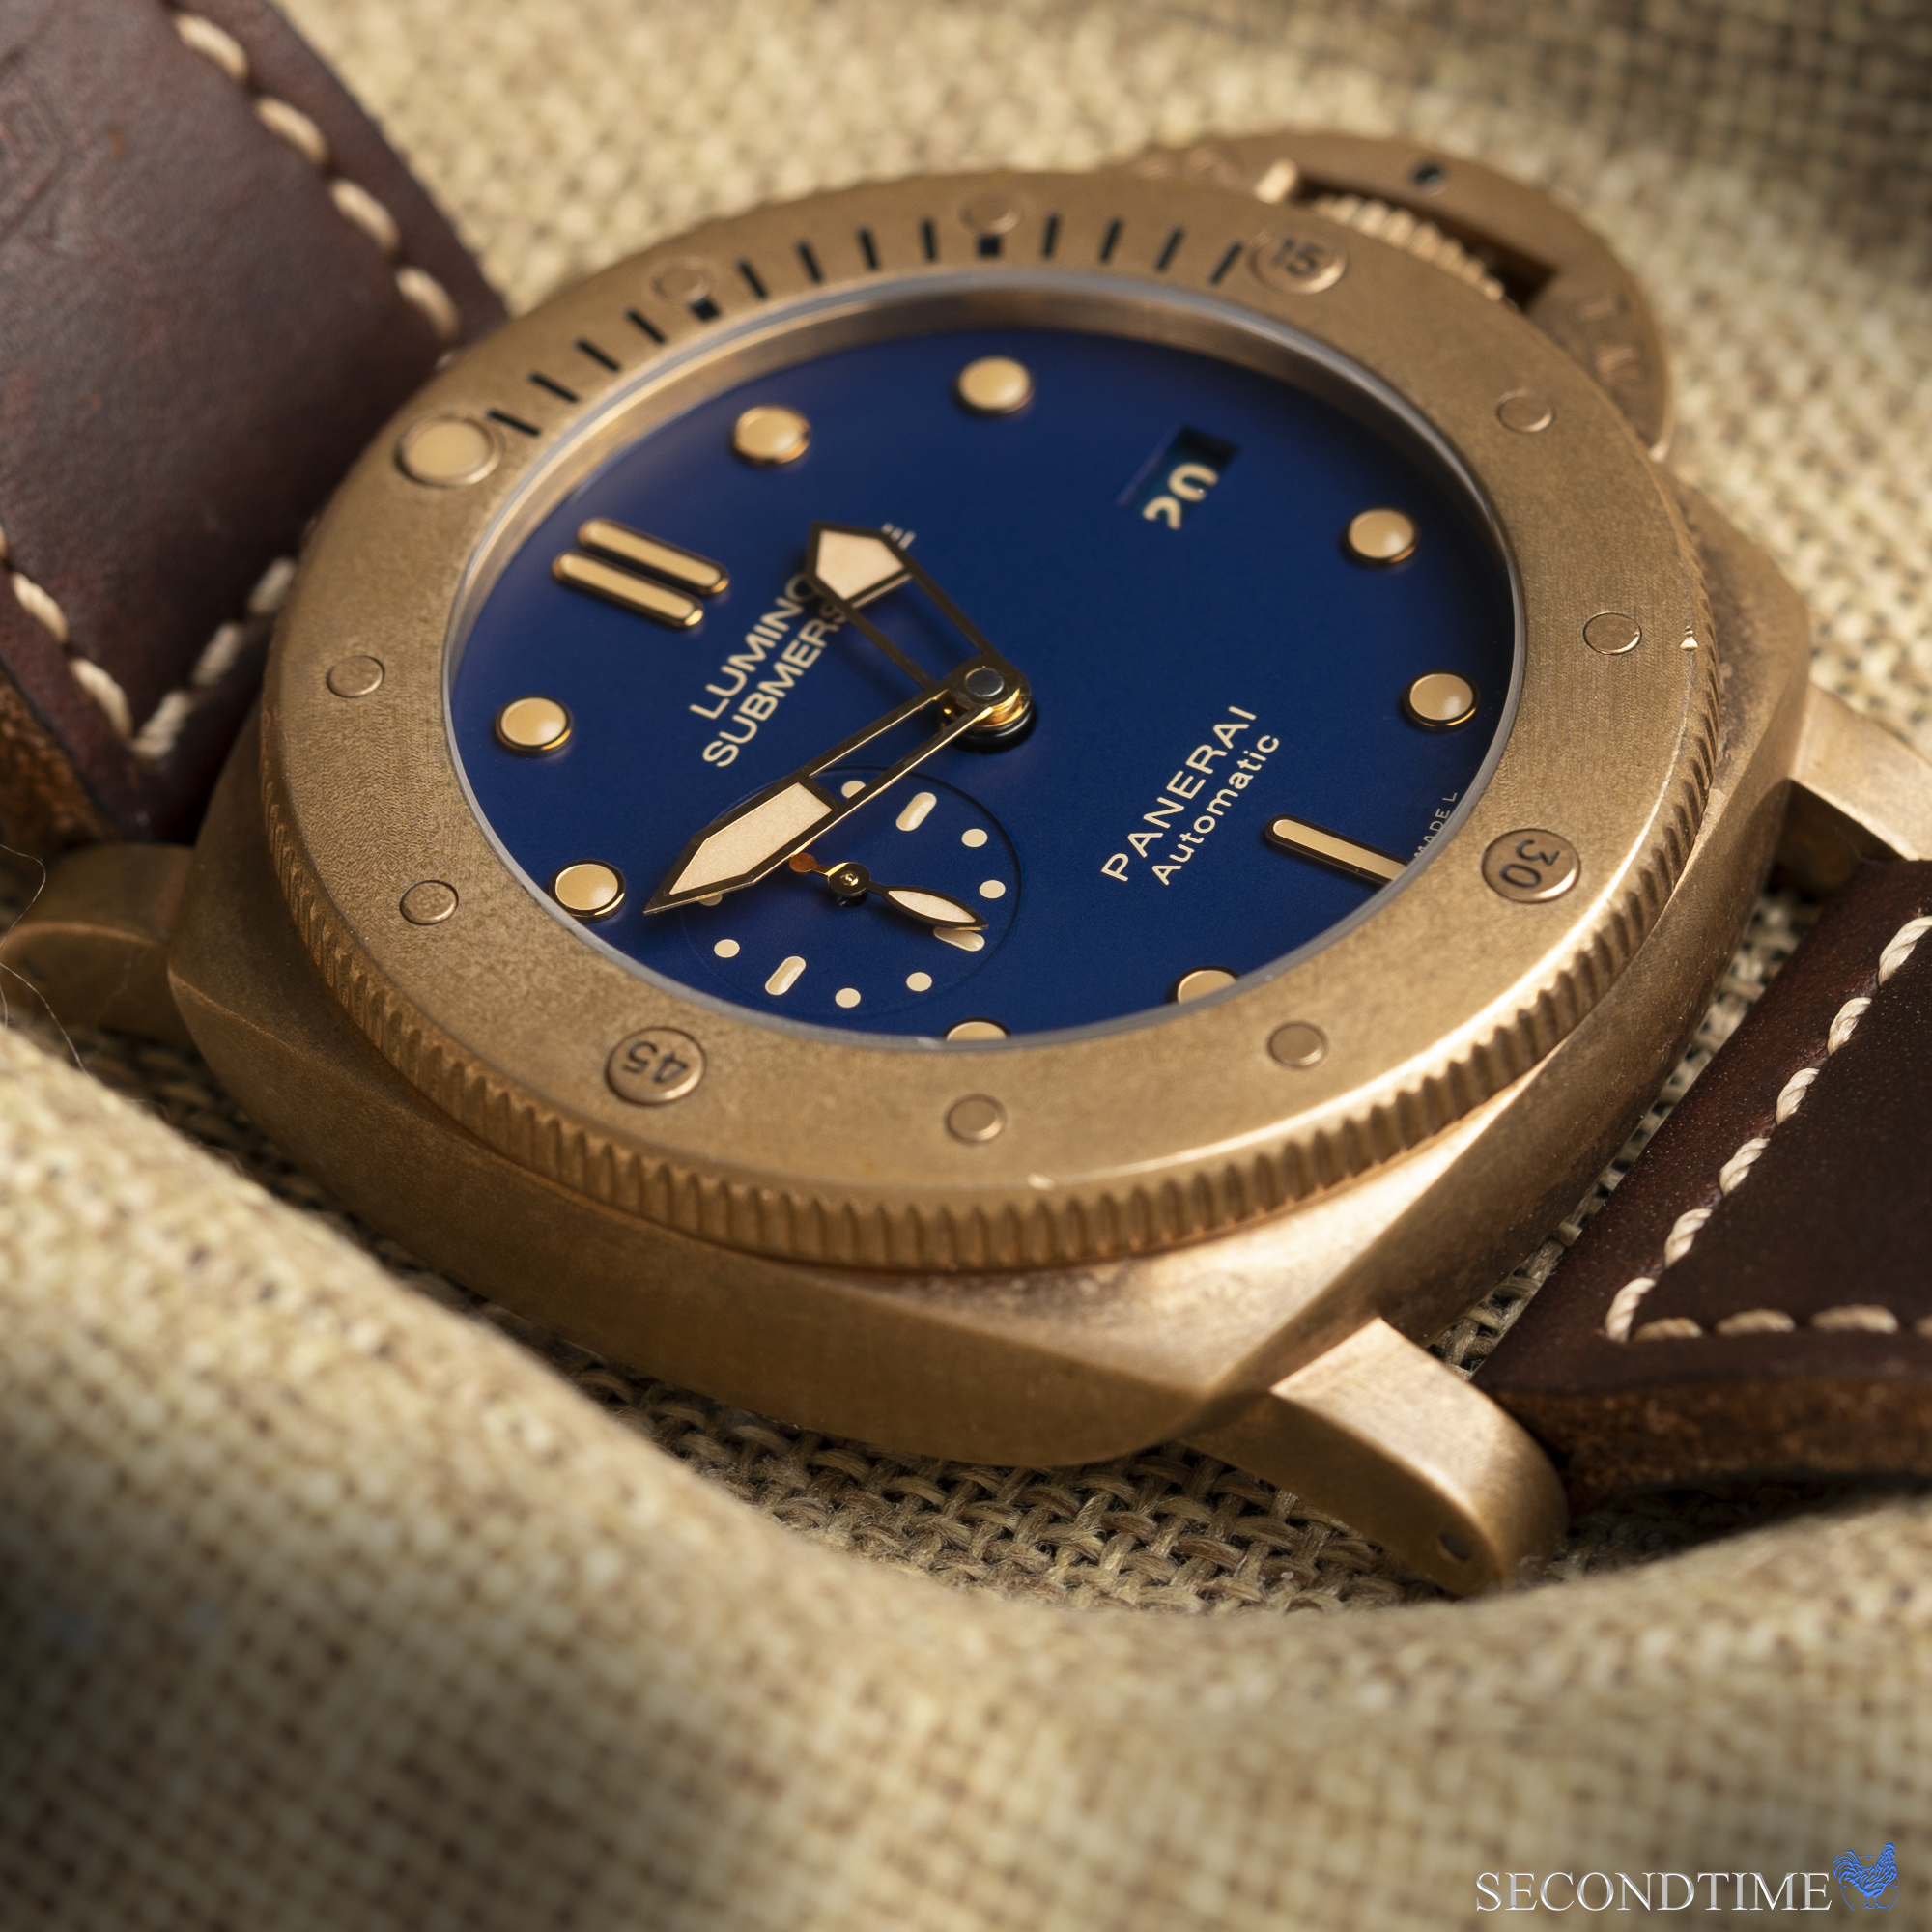 Luminor Submersible Bronzo with Blue Dial - PAM 671 (2017 Special Edition)